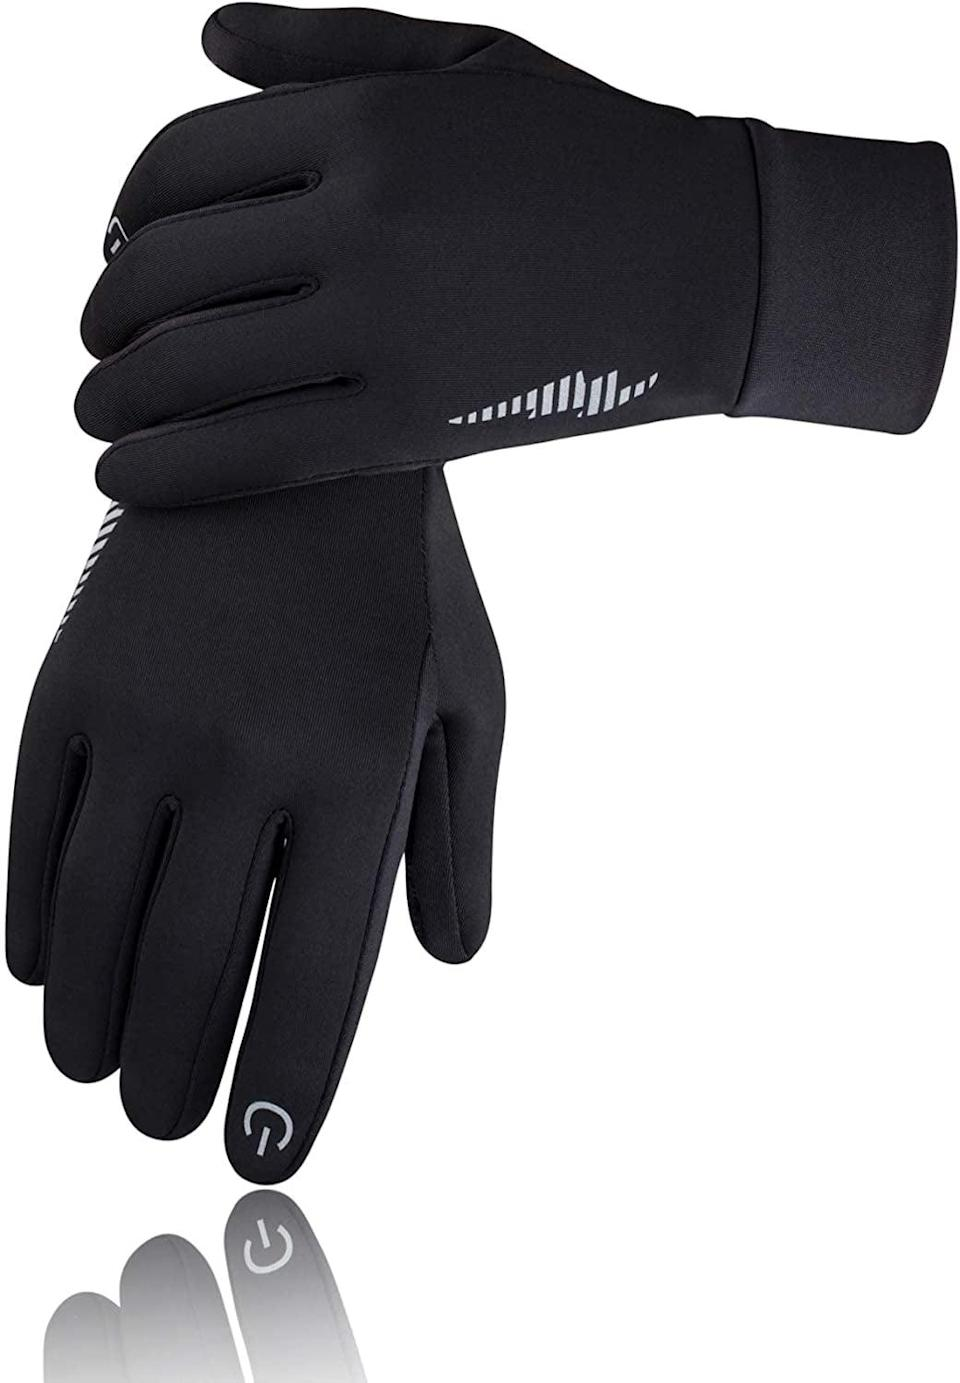 <p>With the <span>SIMARI Touch Screen Winter Gloves</span> ($17) they'll be able to use their smart phones and keep their hands warm during the colder months. It comes in a variety of colors as well!</p>